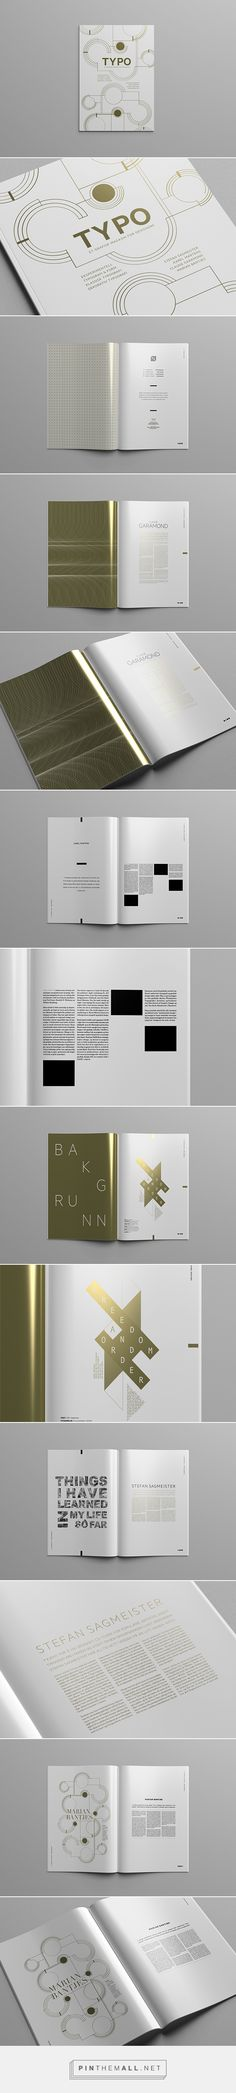 Typo Magazine on Behance